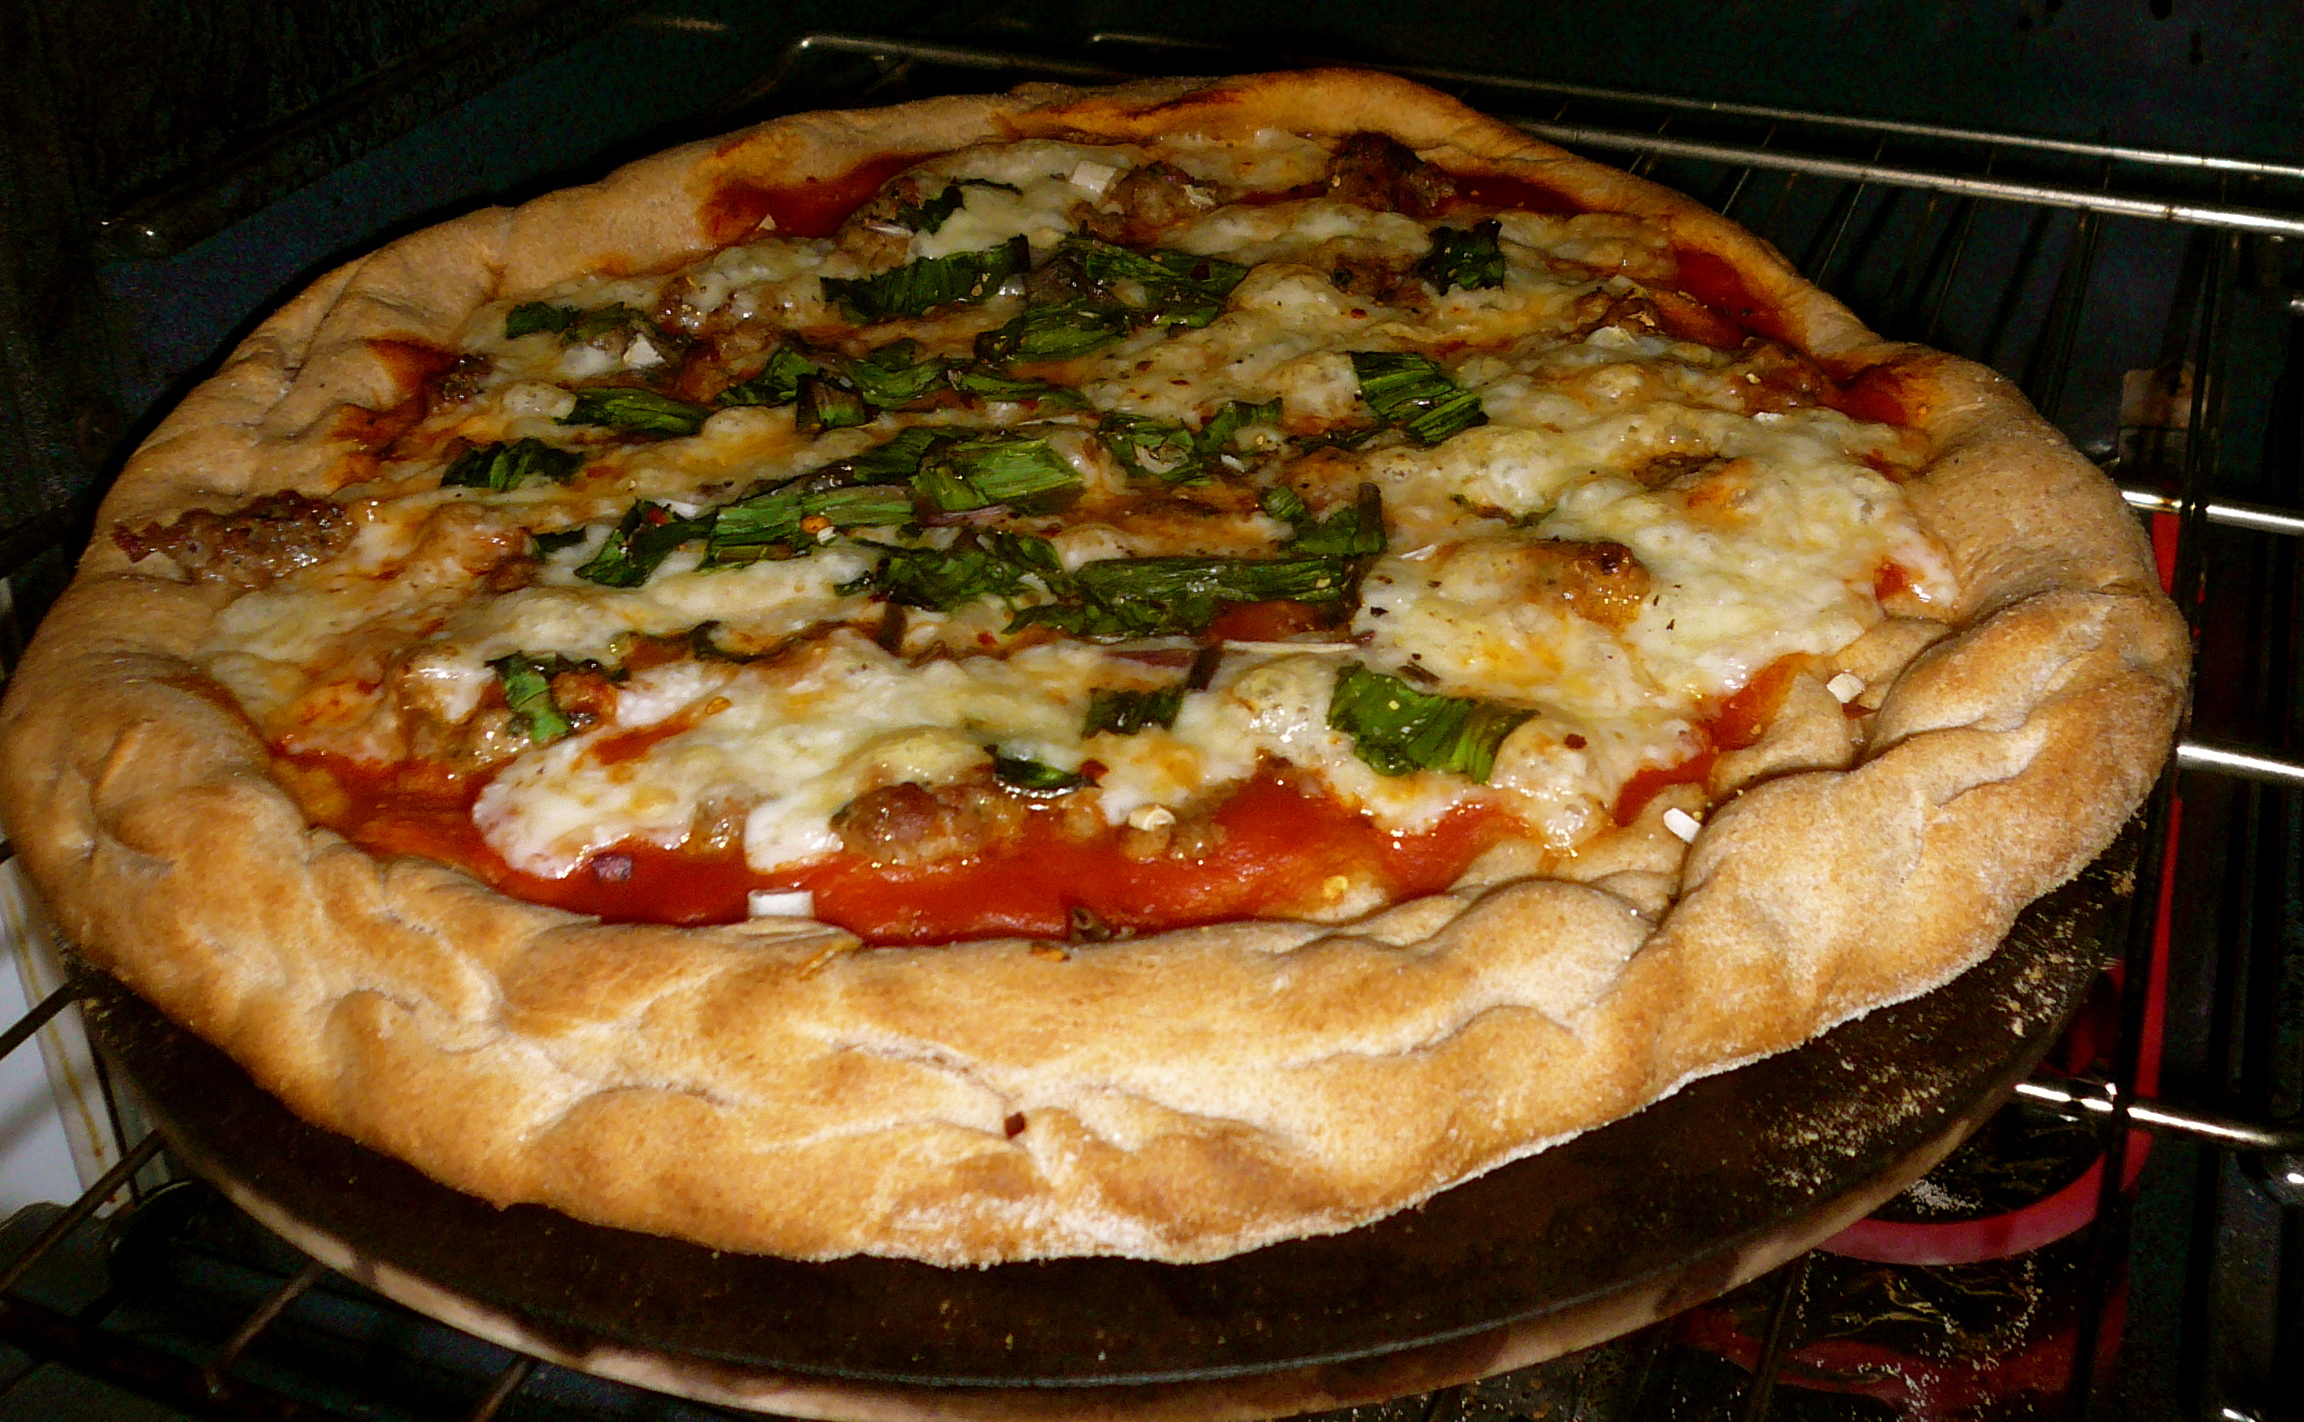 Sausage and Ramp Pizza with Goat's Milk Mozzarella and Half-Whole Wheat Sourdough Crust